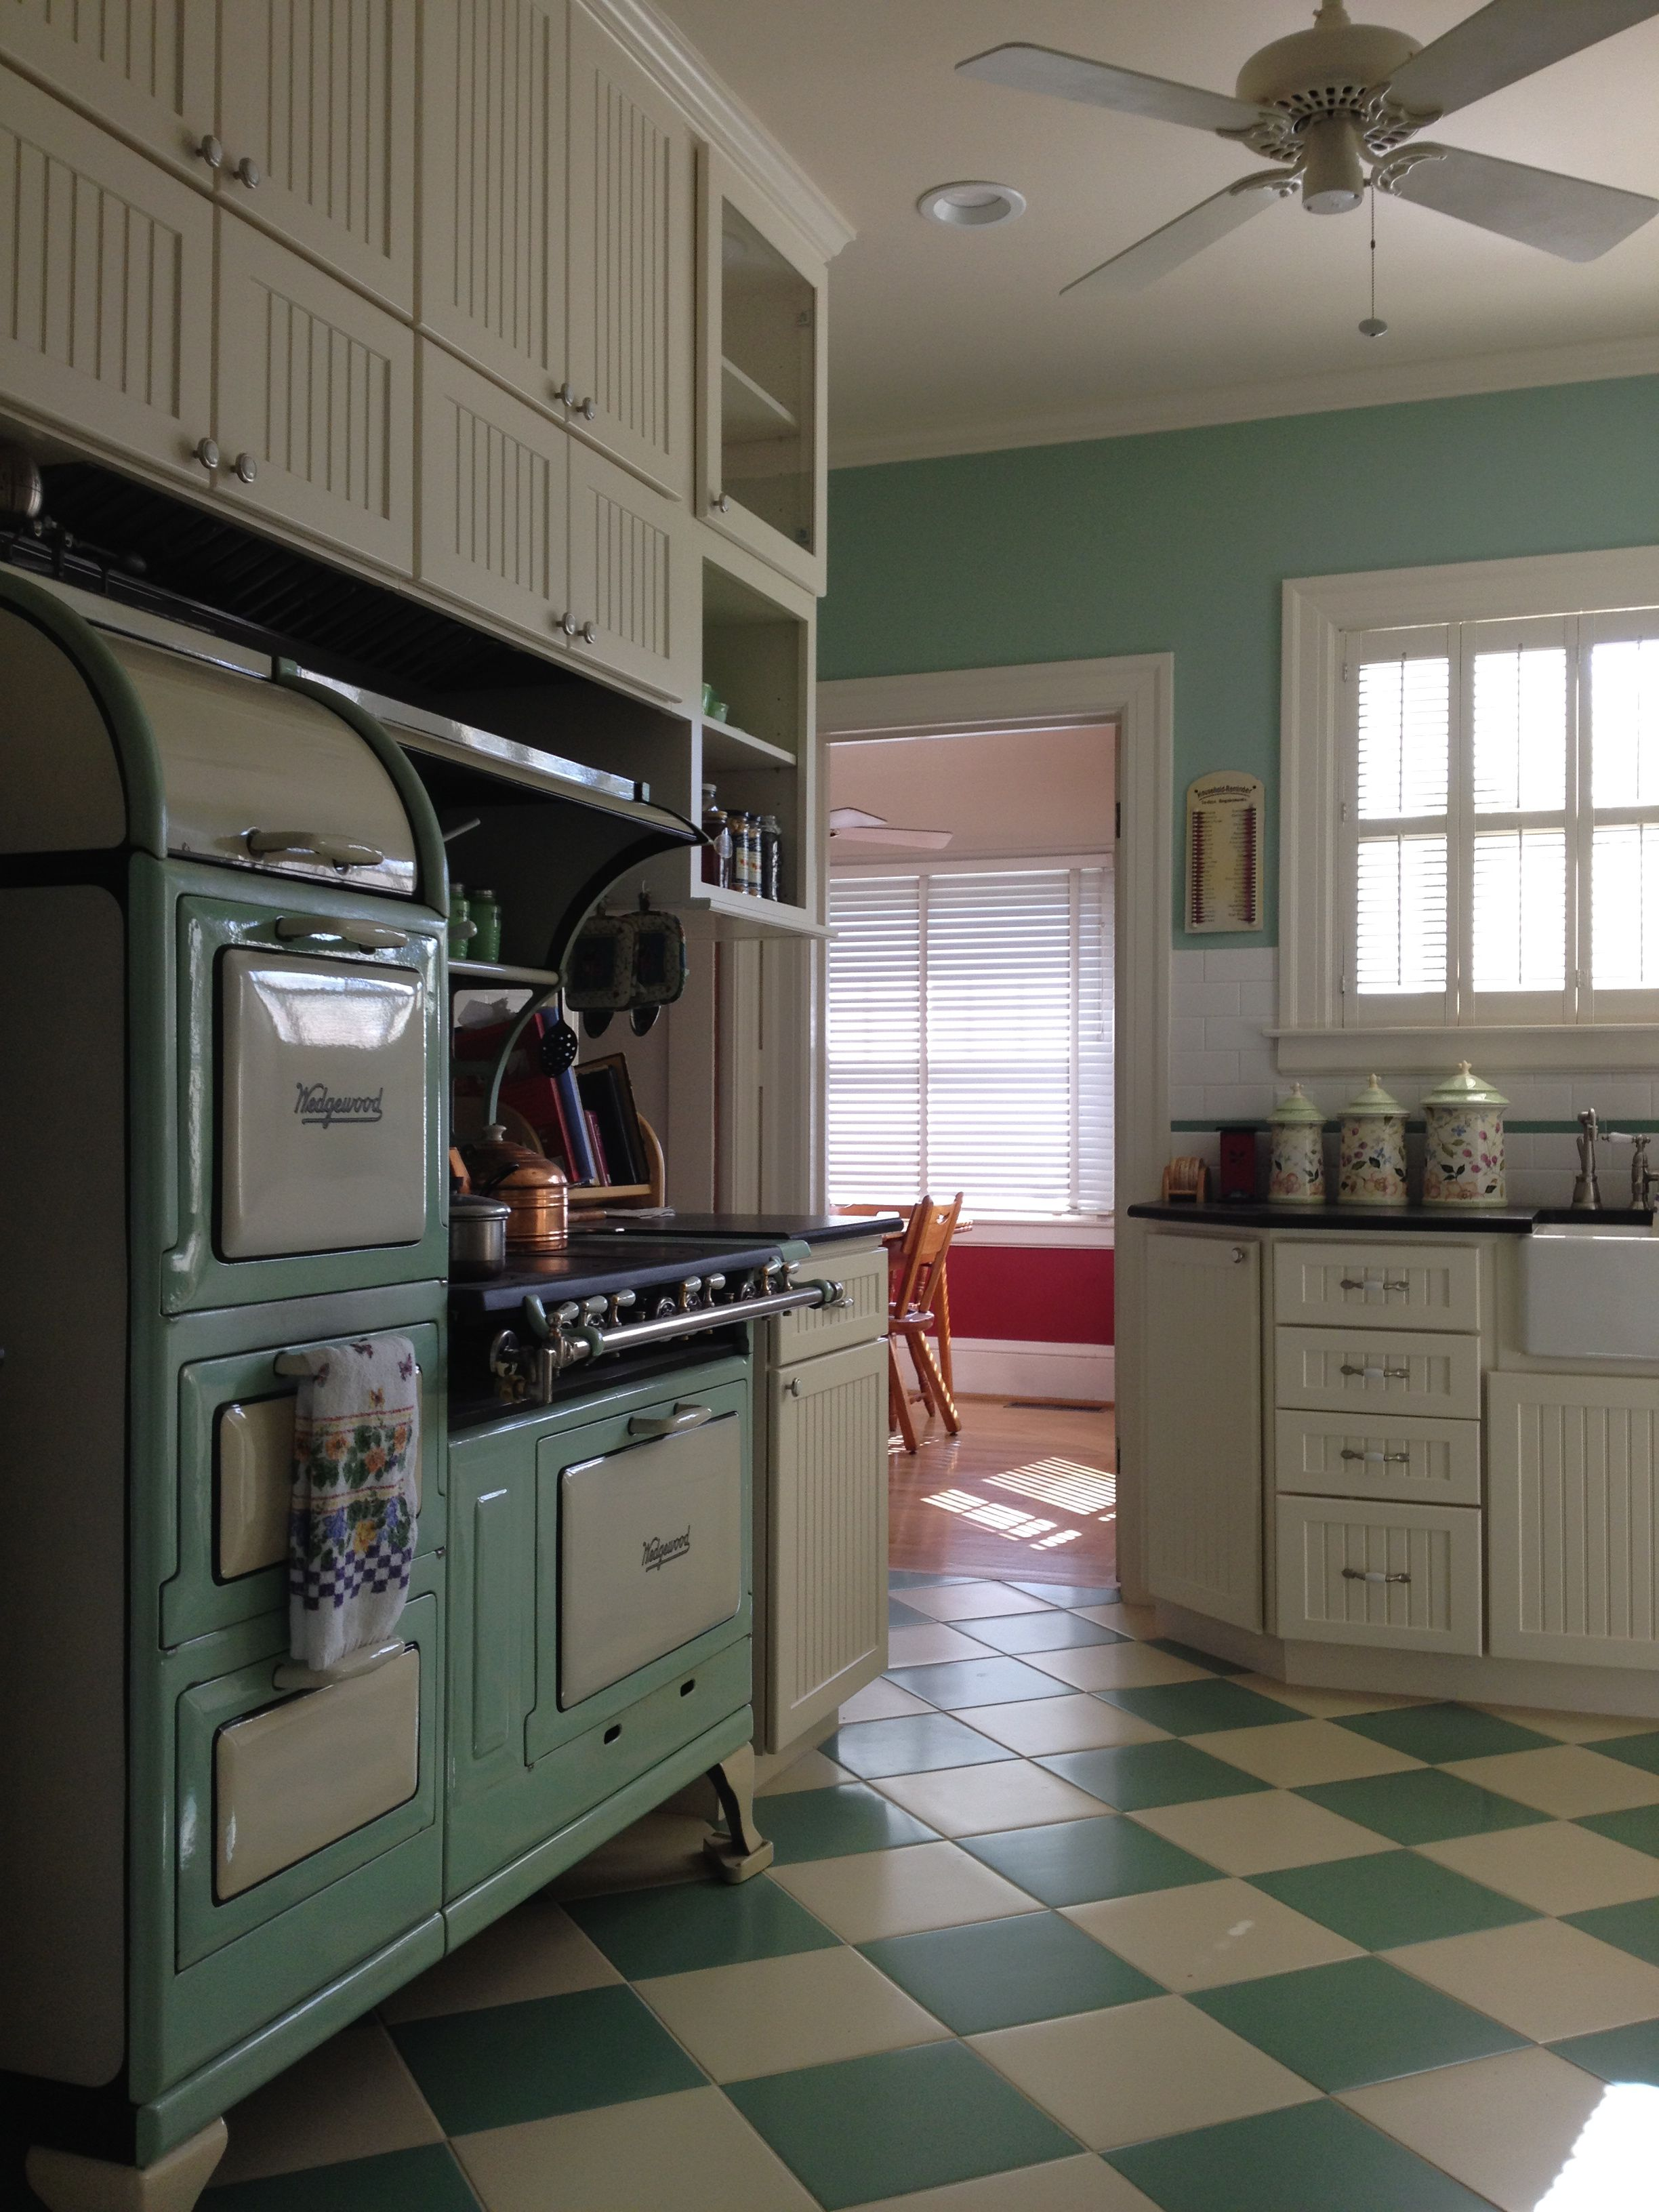 The Kitchen In This Otherwise Beautifully Intact 1926 Home Was Updated In The 1950 S But Lacked The Vis Home Decor Kitchen Vintage Kitchen Decor Vintage House